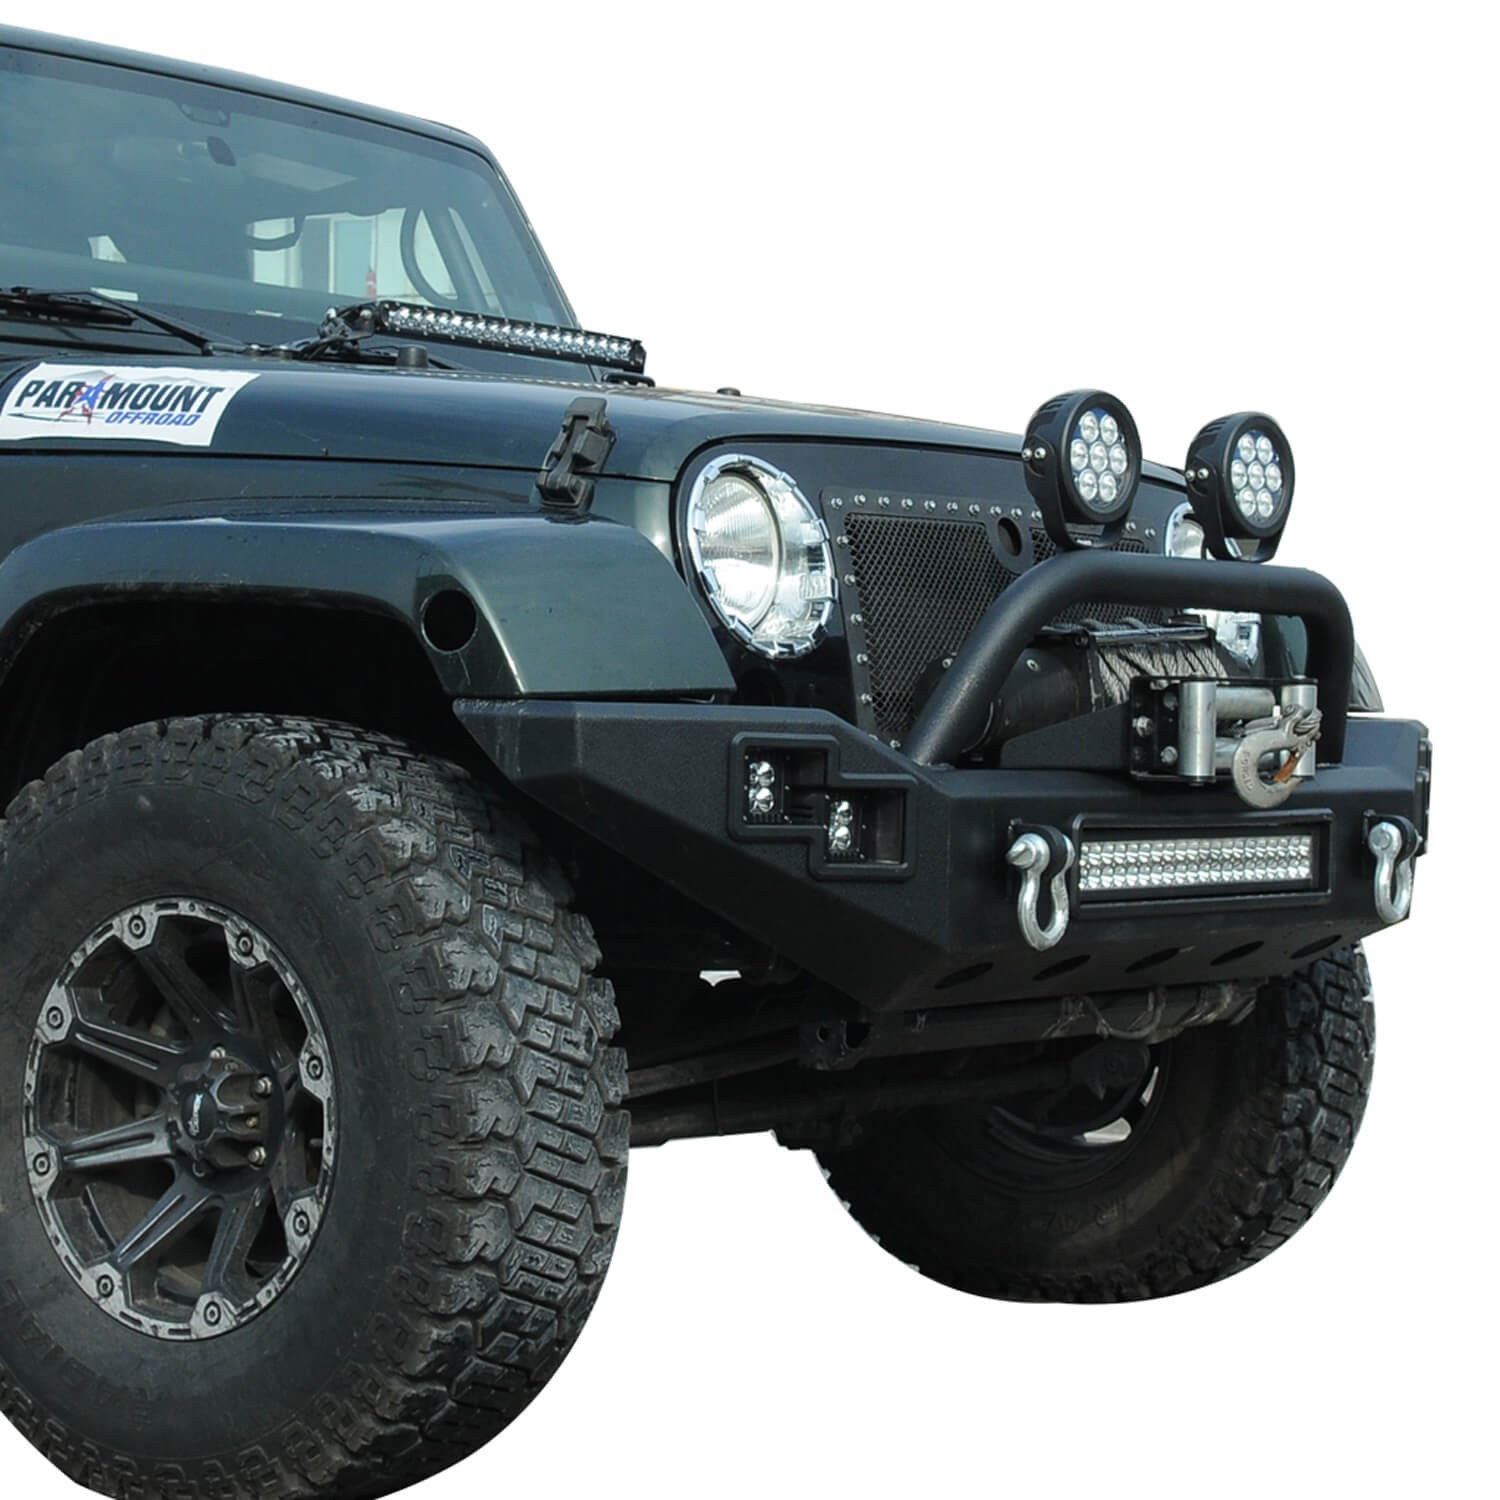 Buy Jw0303 Steel Front Bumper With Winch Cradle Led Light Bar Rear Jeep Wrangler 2008 Picture Of A Fog